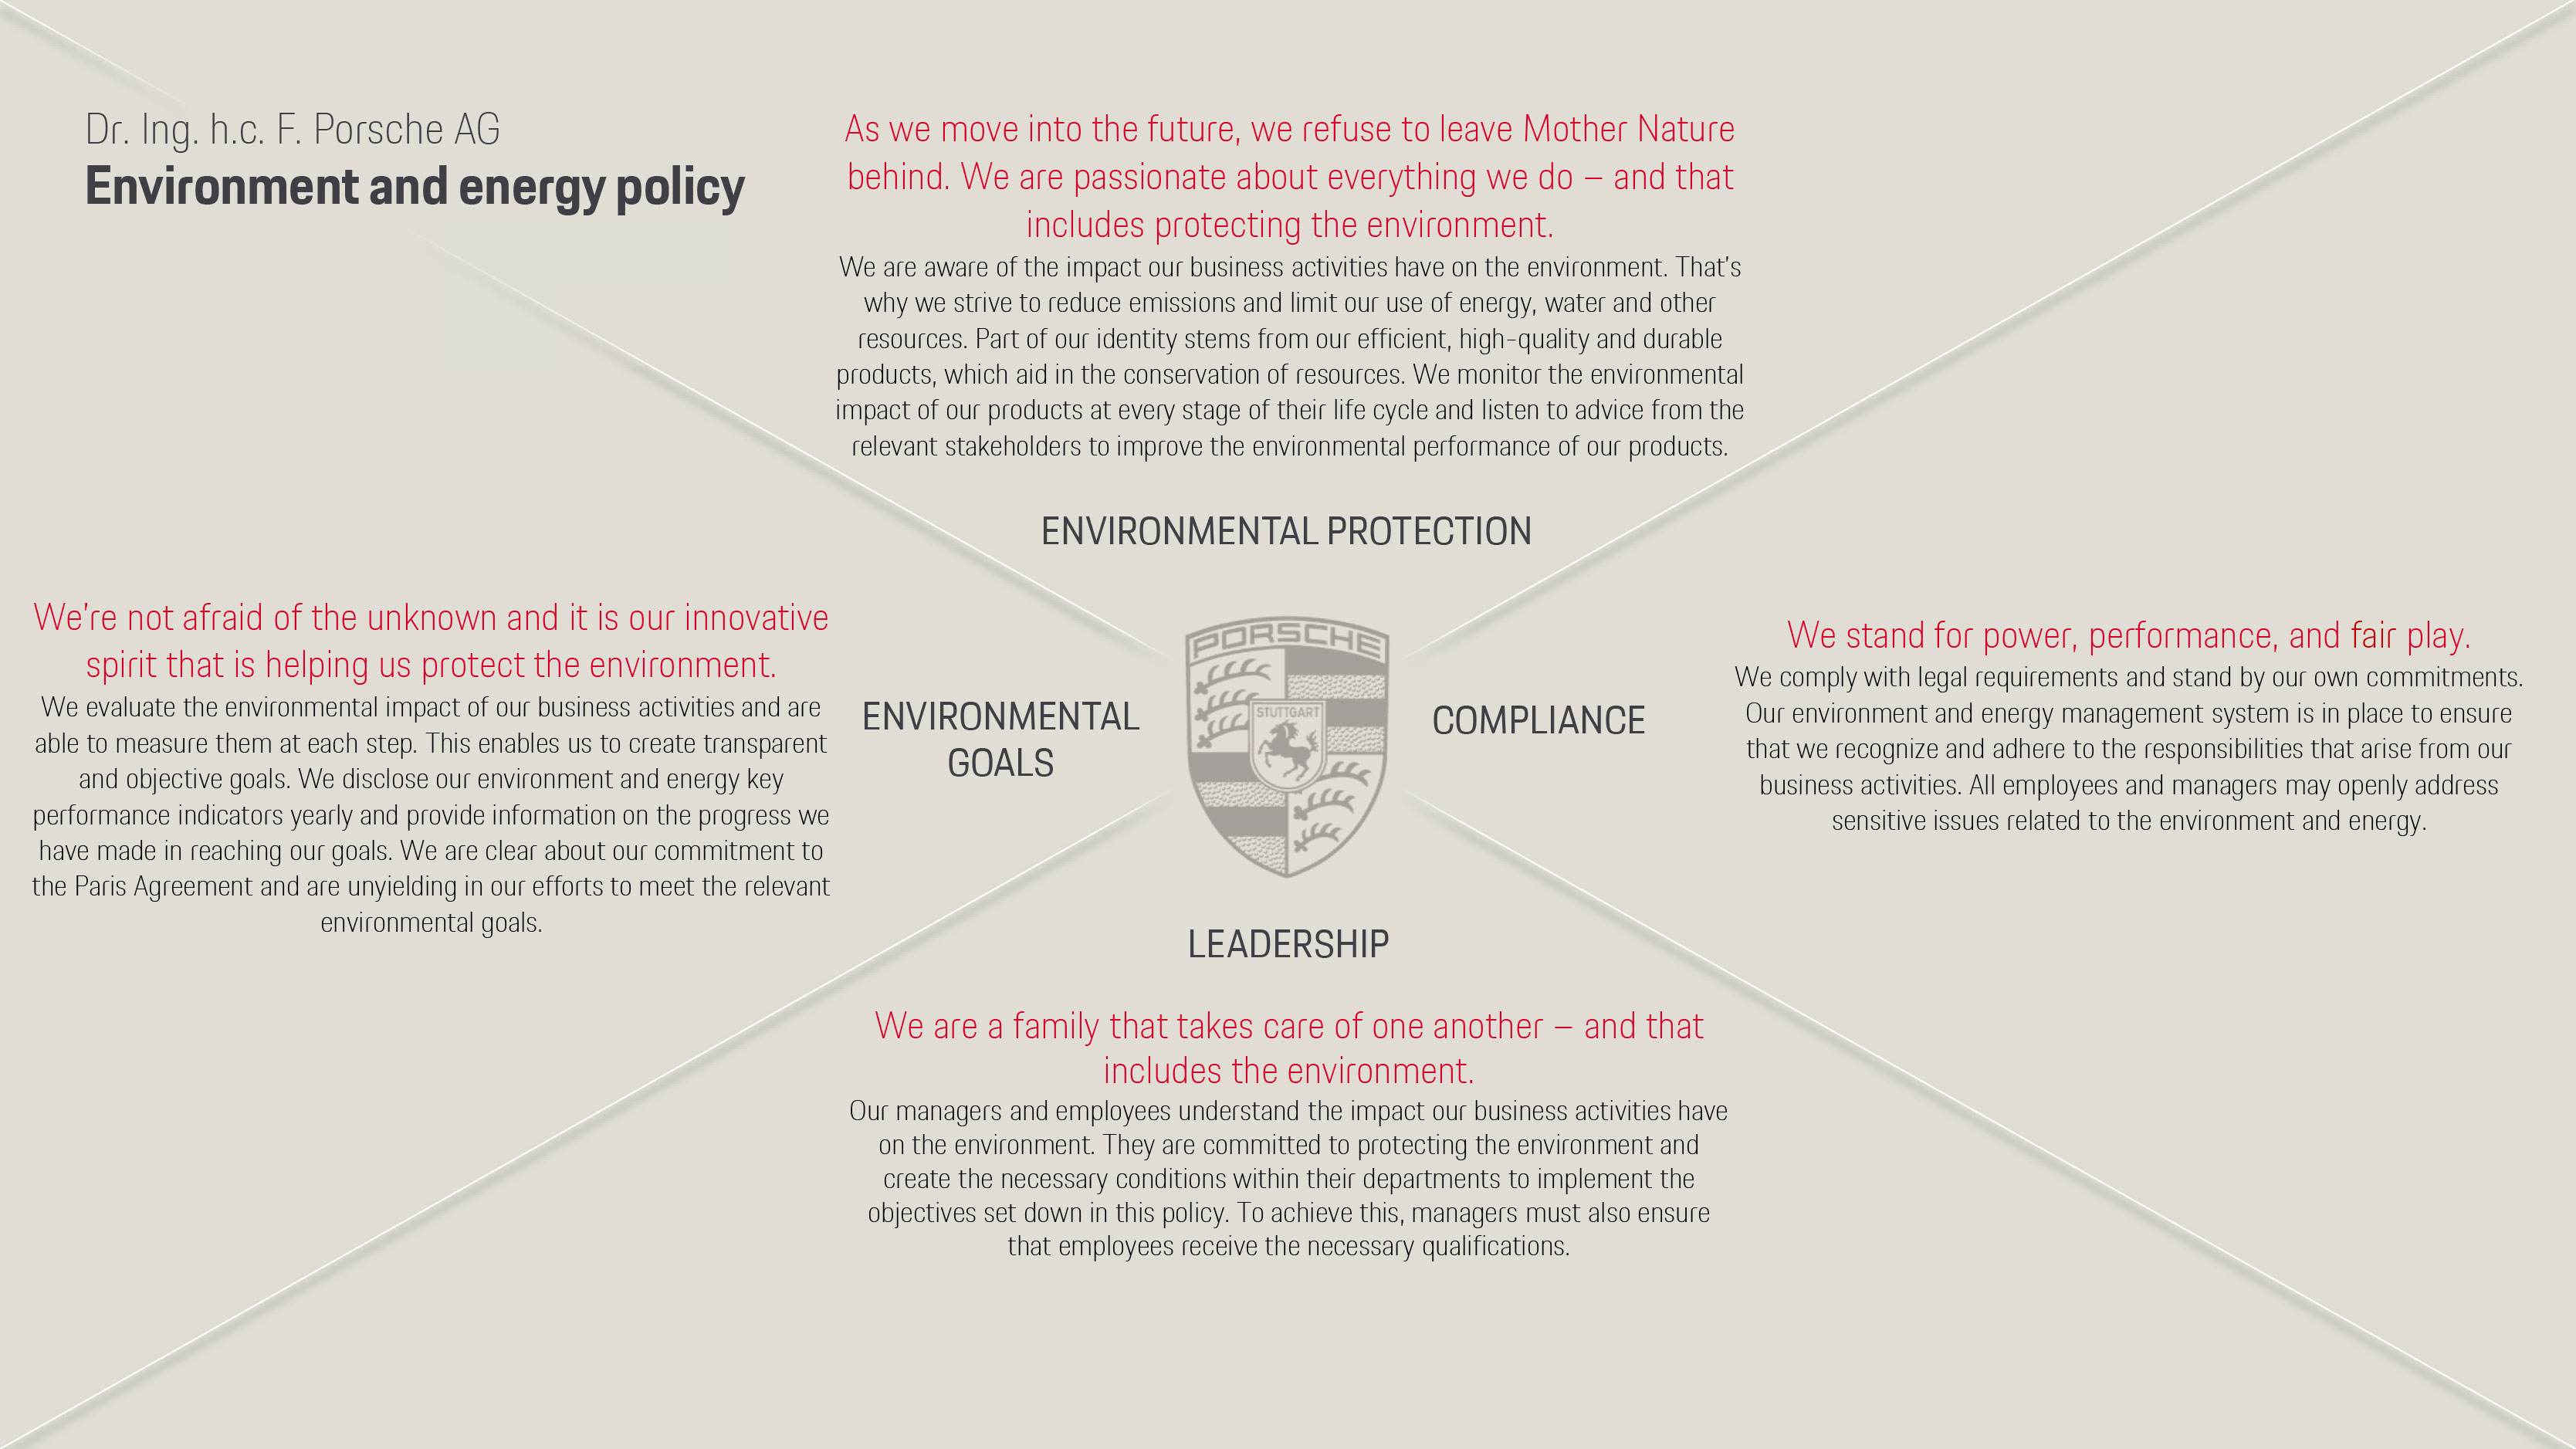 Environment and energy policy, 2020, Porsche AG